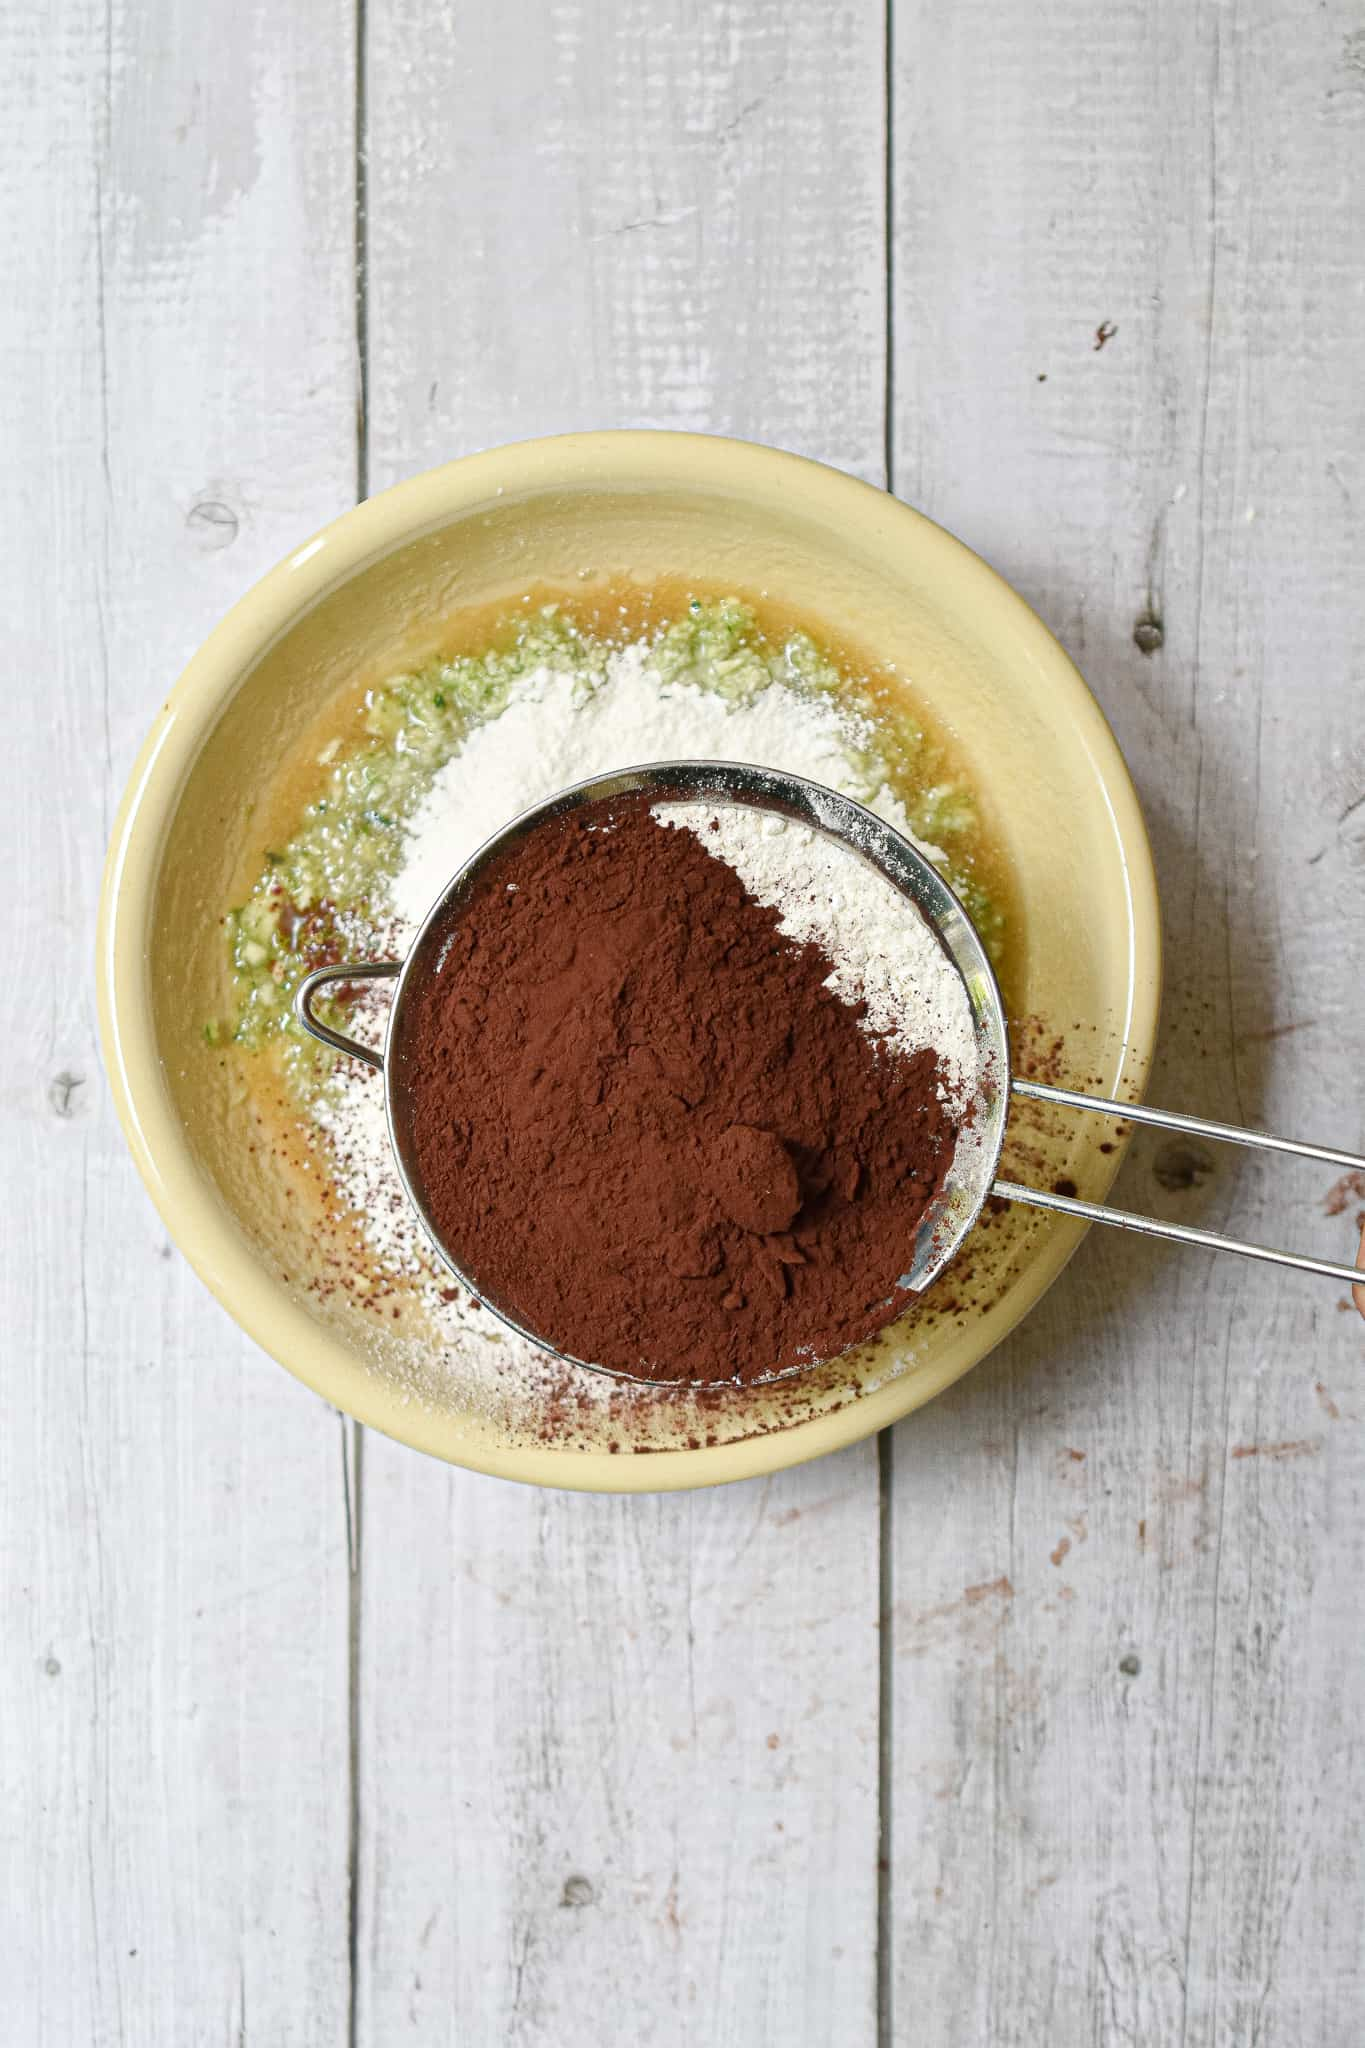 The dry ingredients are sifted into the death by chocolate zucchini bread mixture